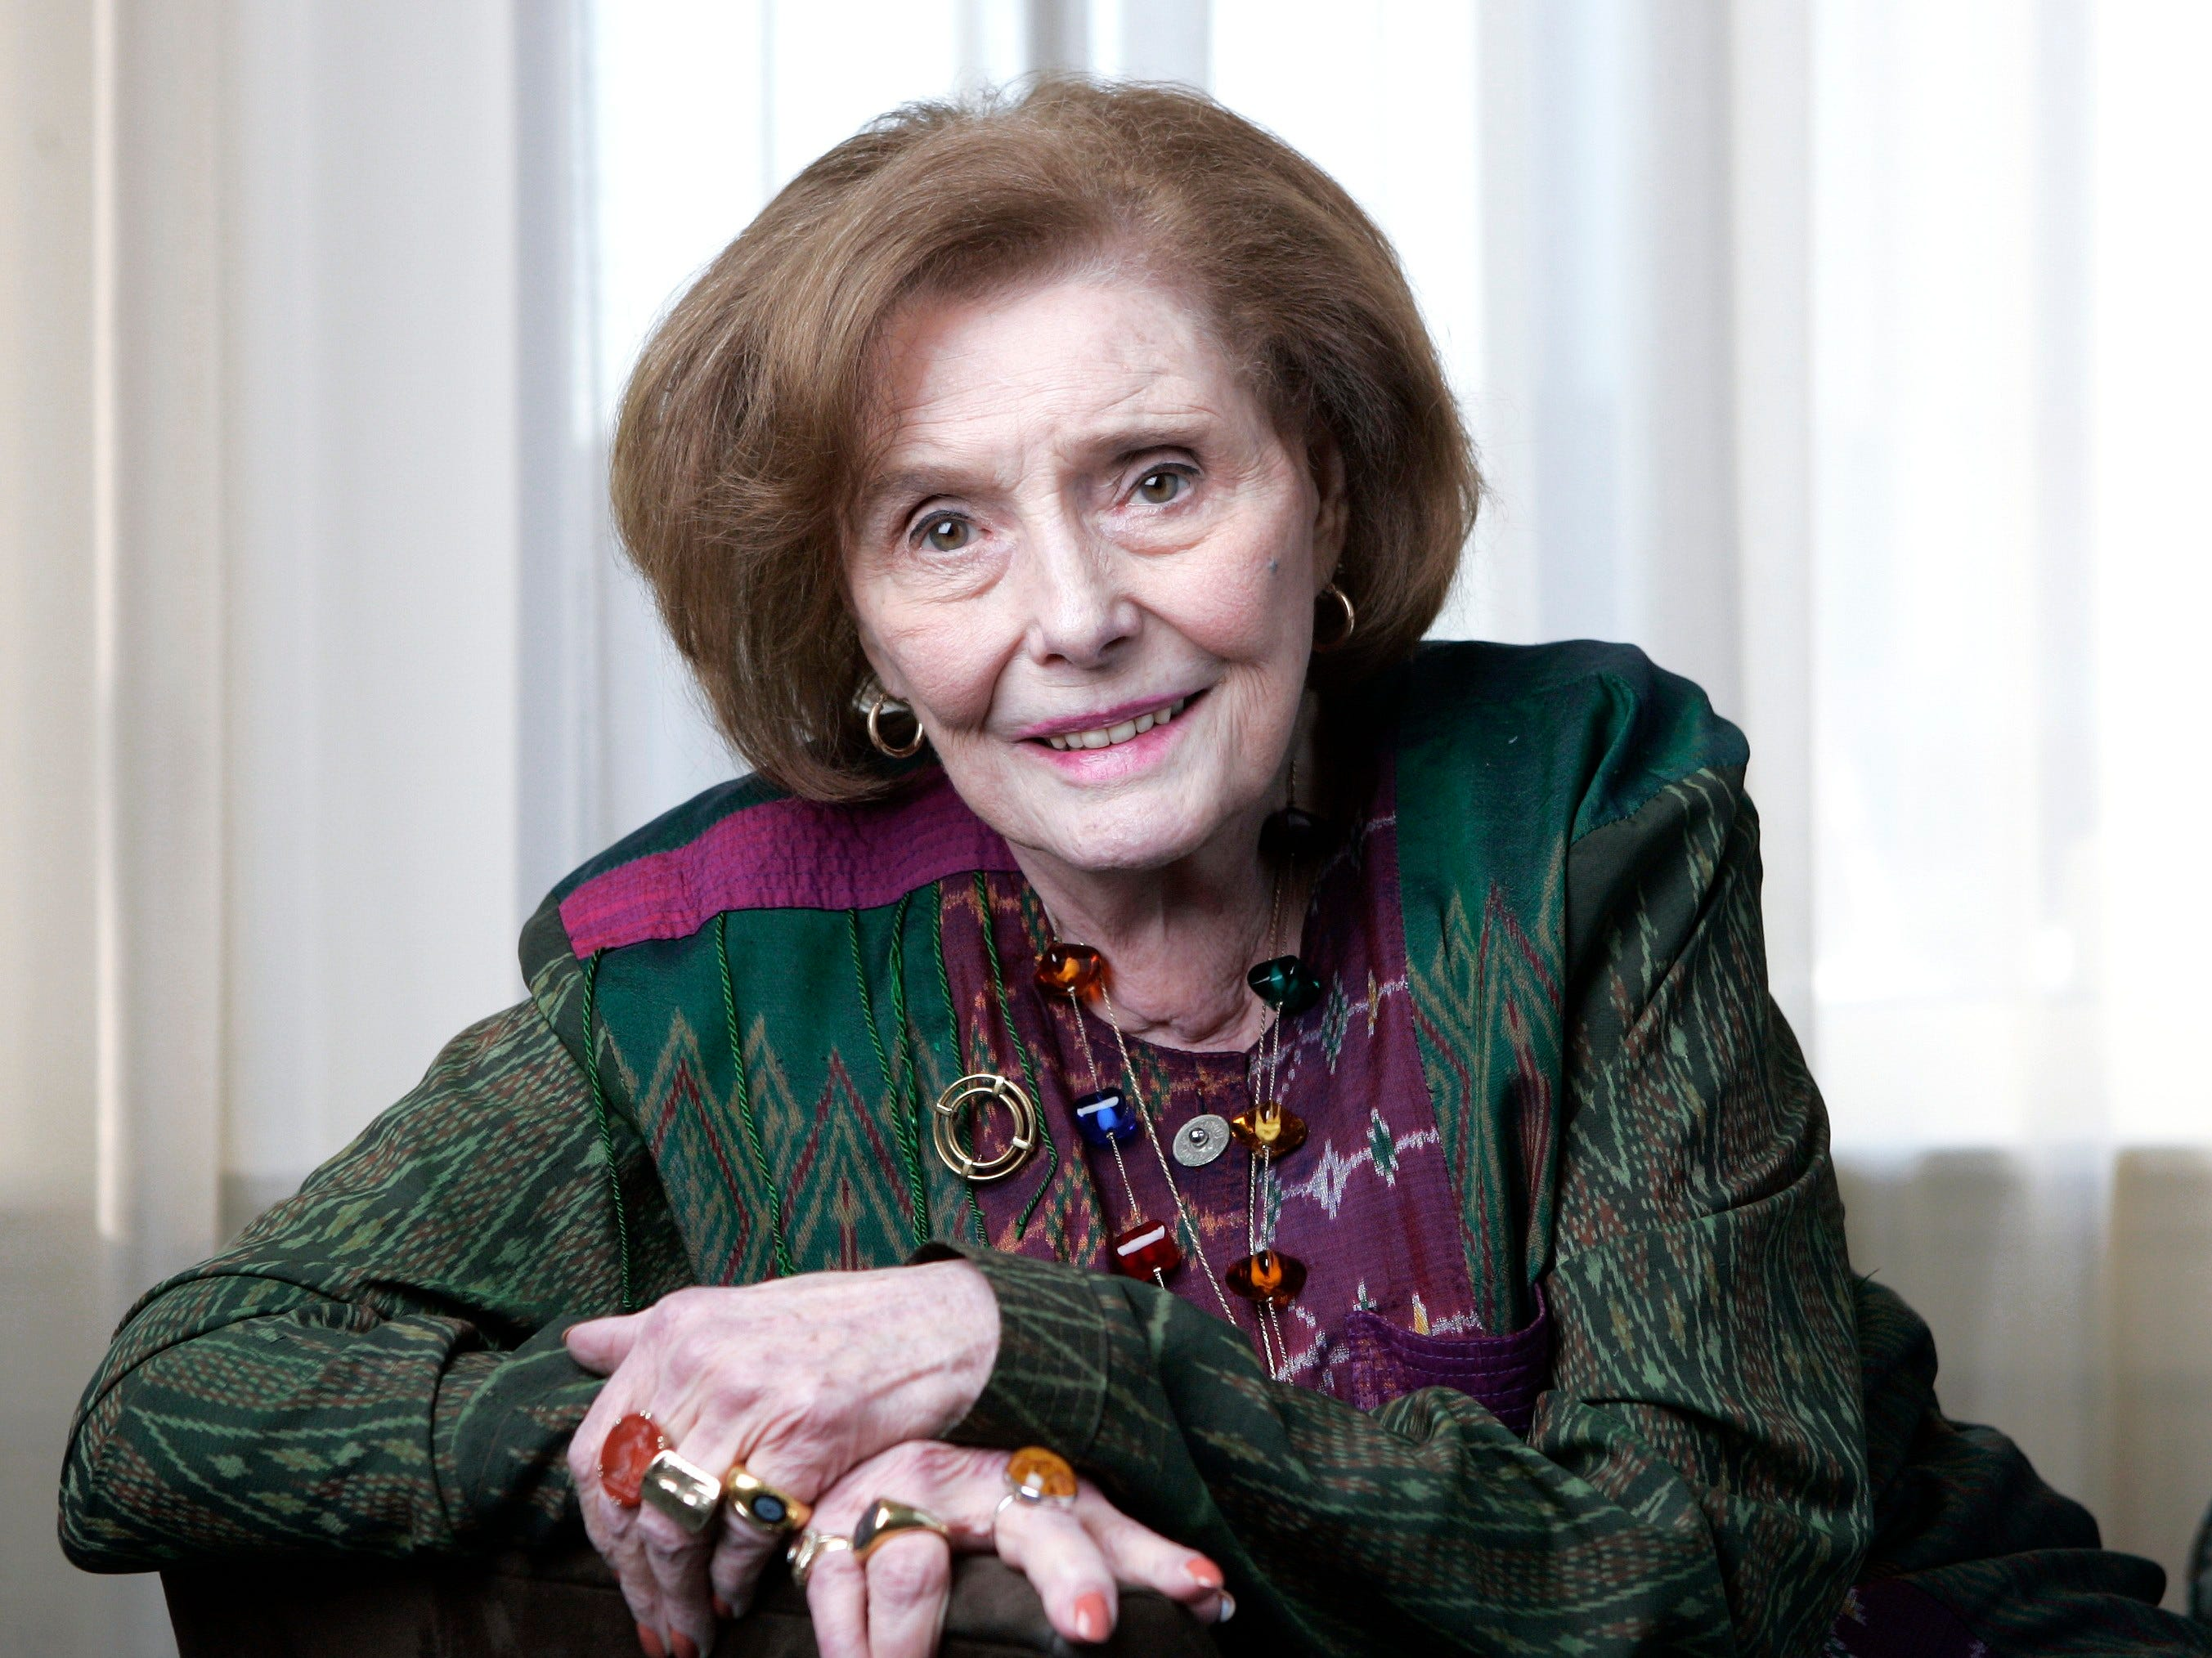 "In this April 21, 2008 file photo, actress Patricia Neal is shown during an interview in Nashville, Tenn. Neal, who won an Oscar in 1964 for ""Hud"" and later fought back from crippling strokes, died Sunday, Aug. 8, 2010, at age 84."